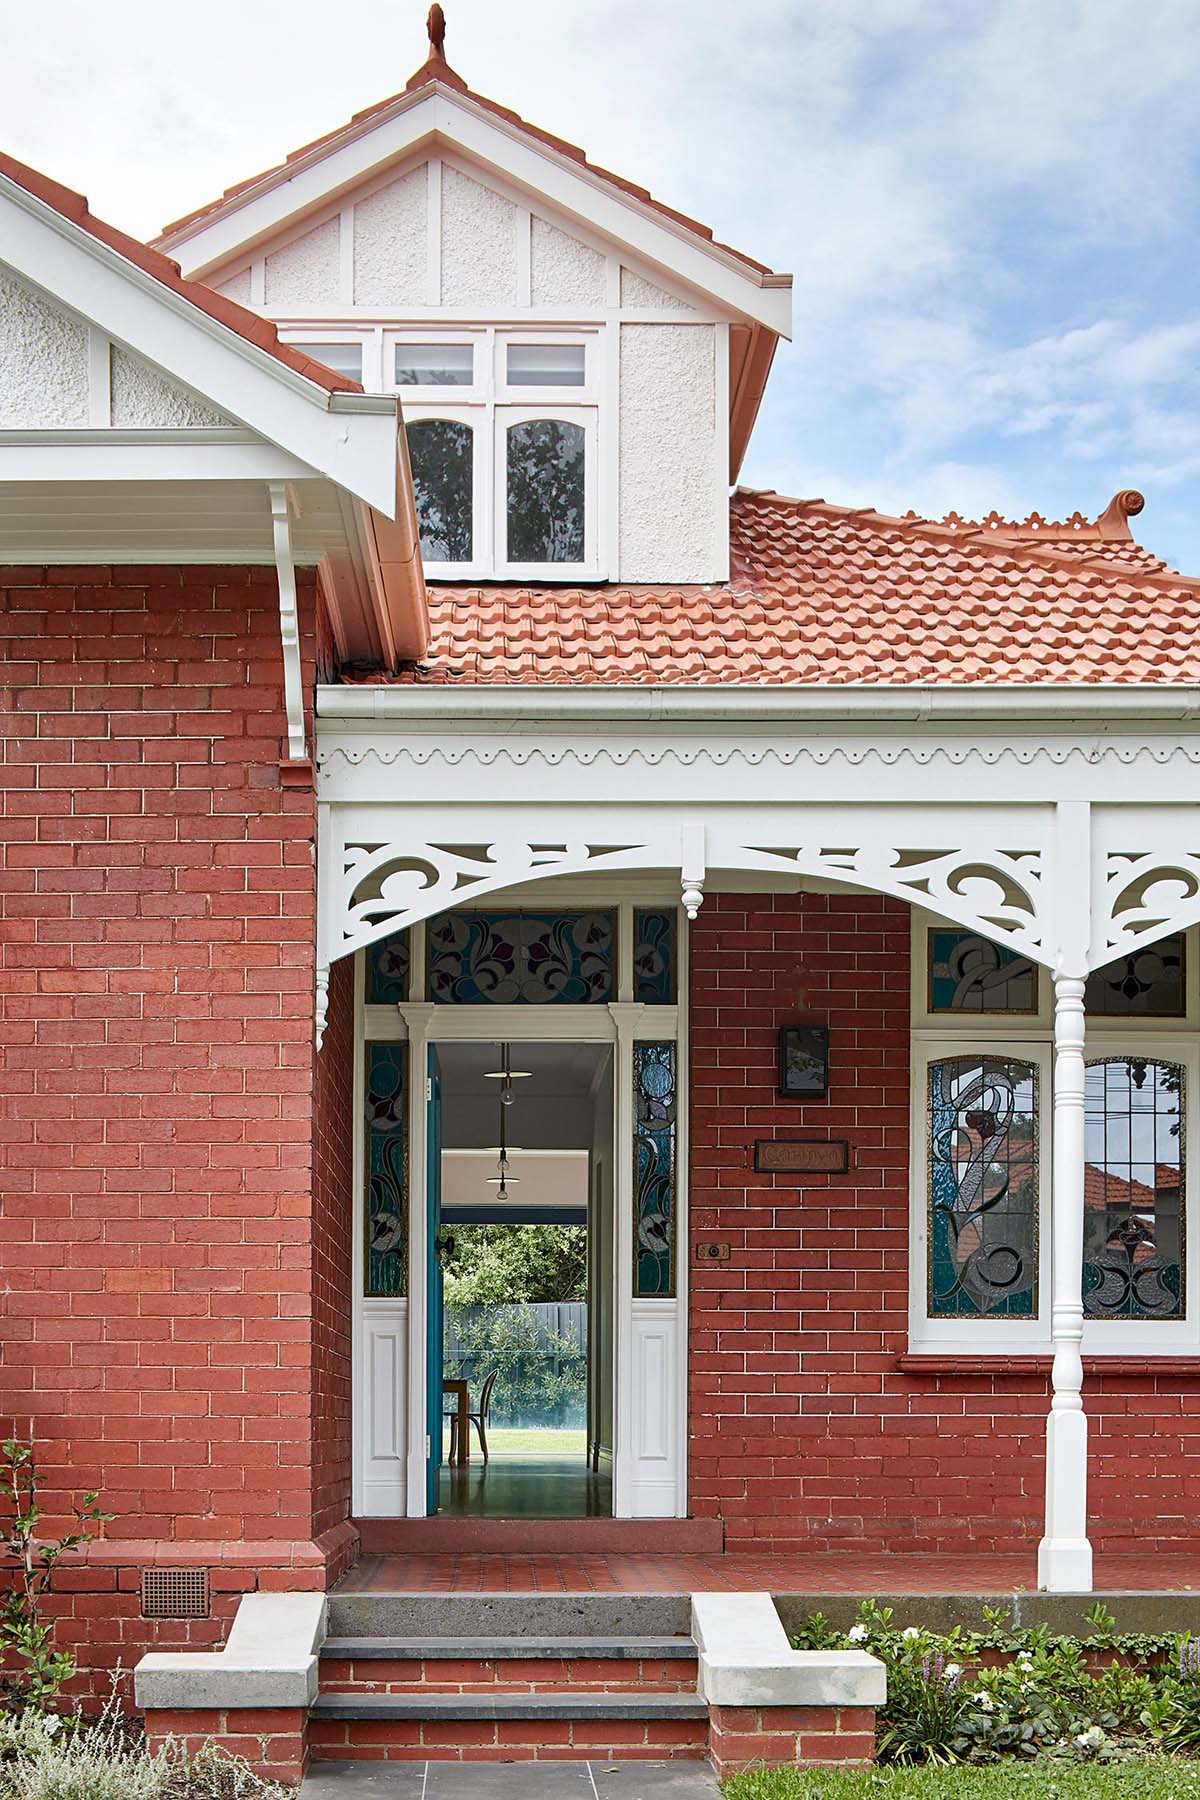 An Australian brick Federation house with a front porch.